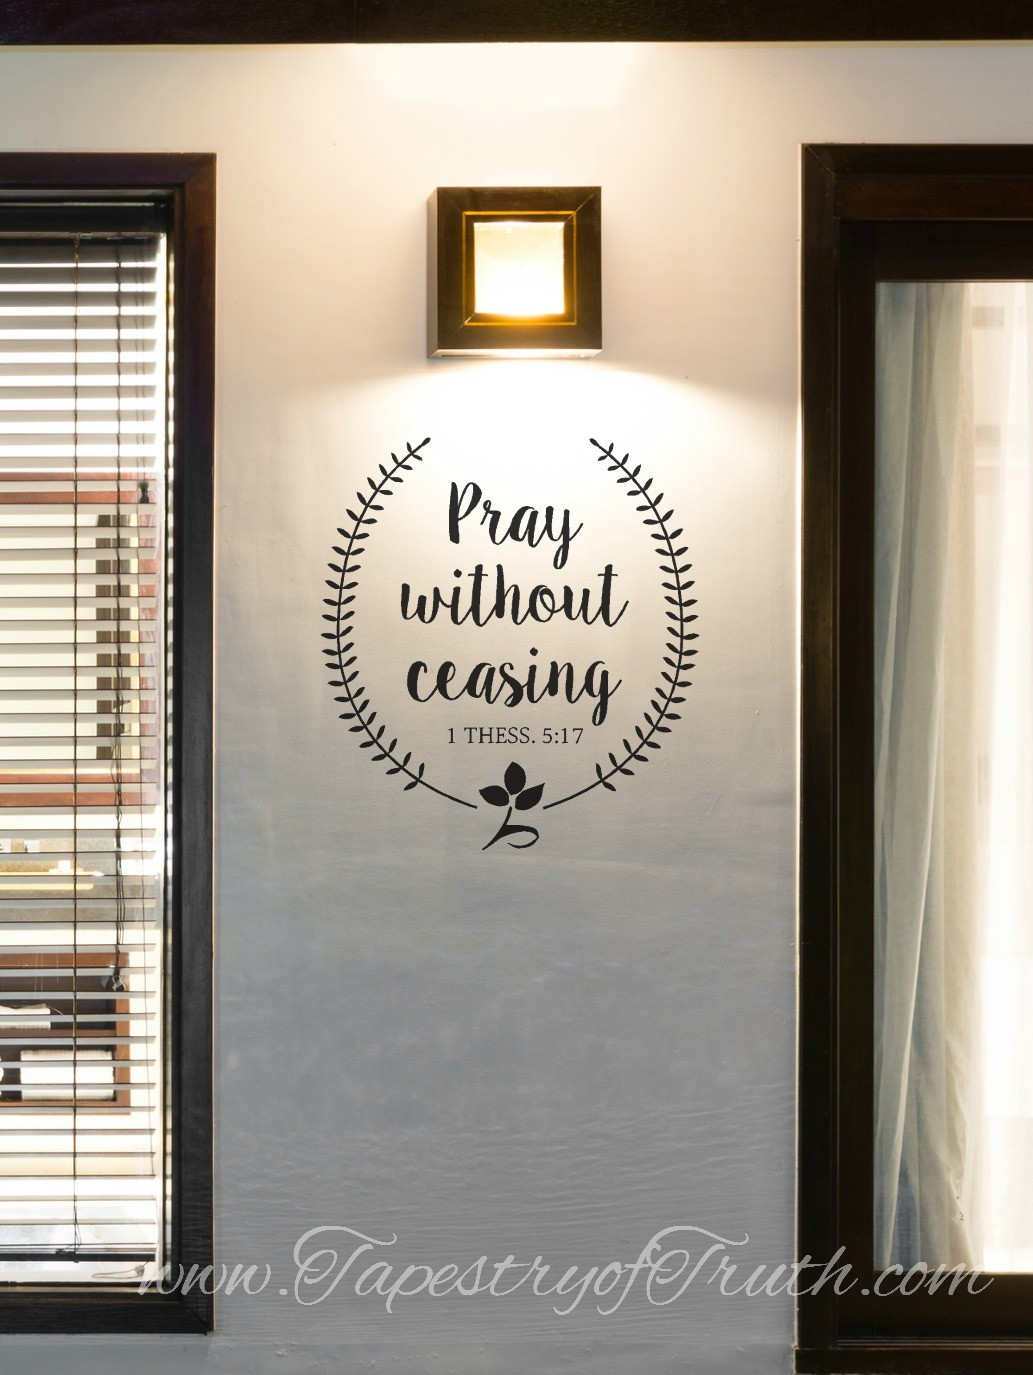 1 Thess 5:17 Wreath Decal1